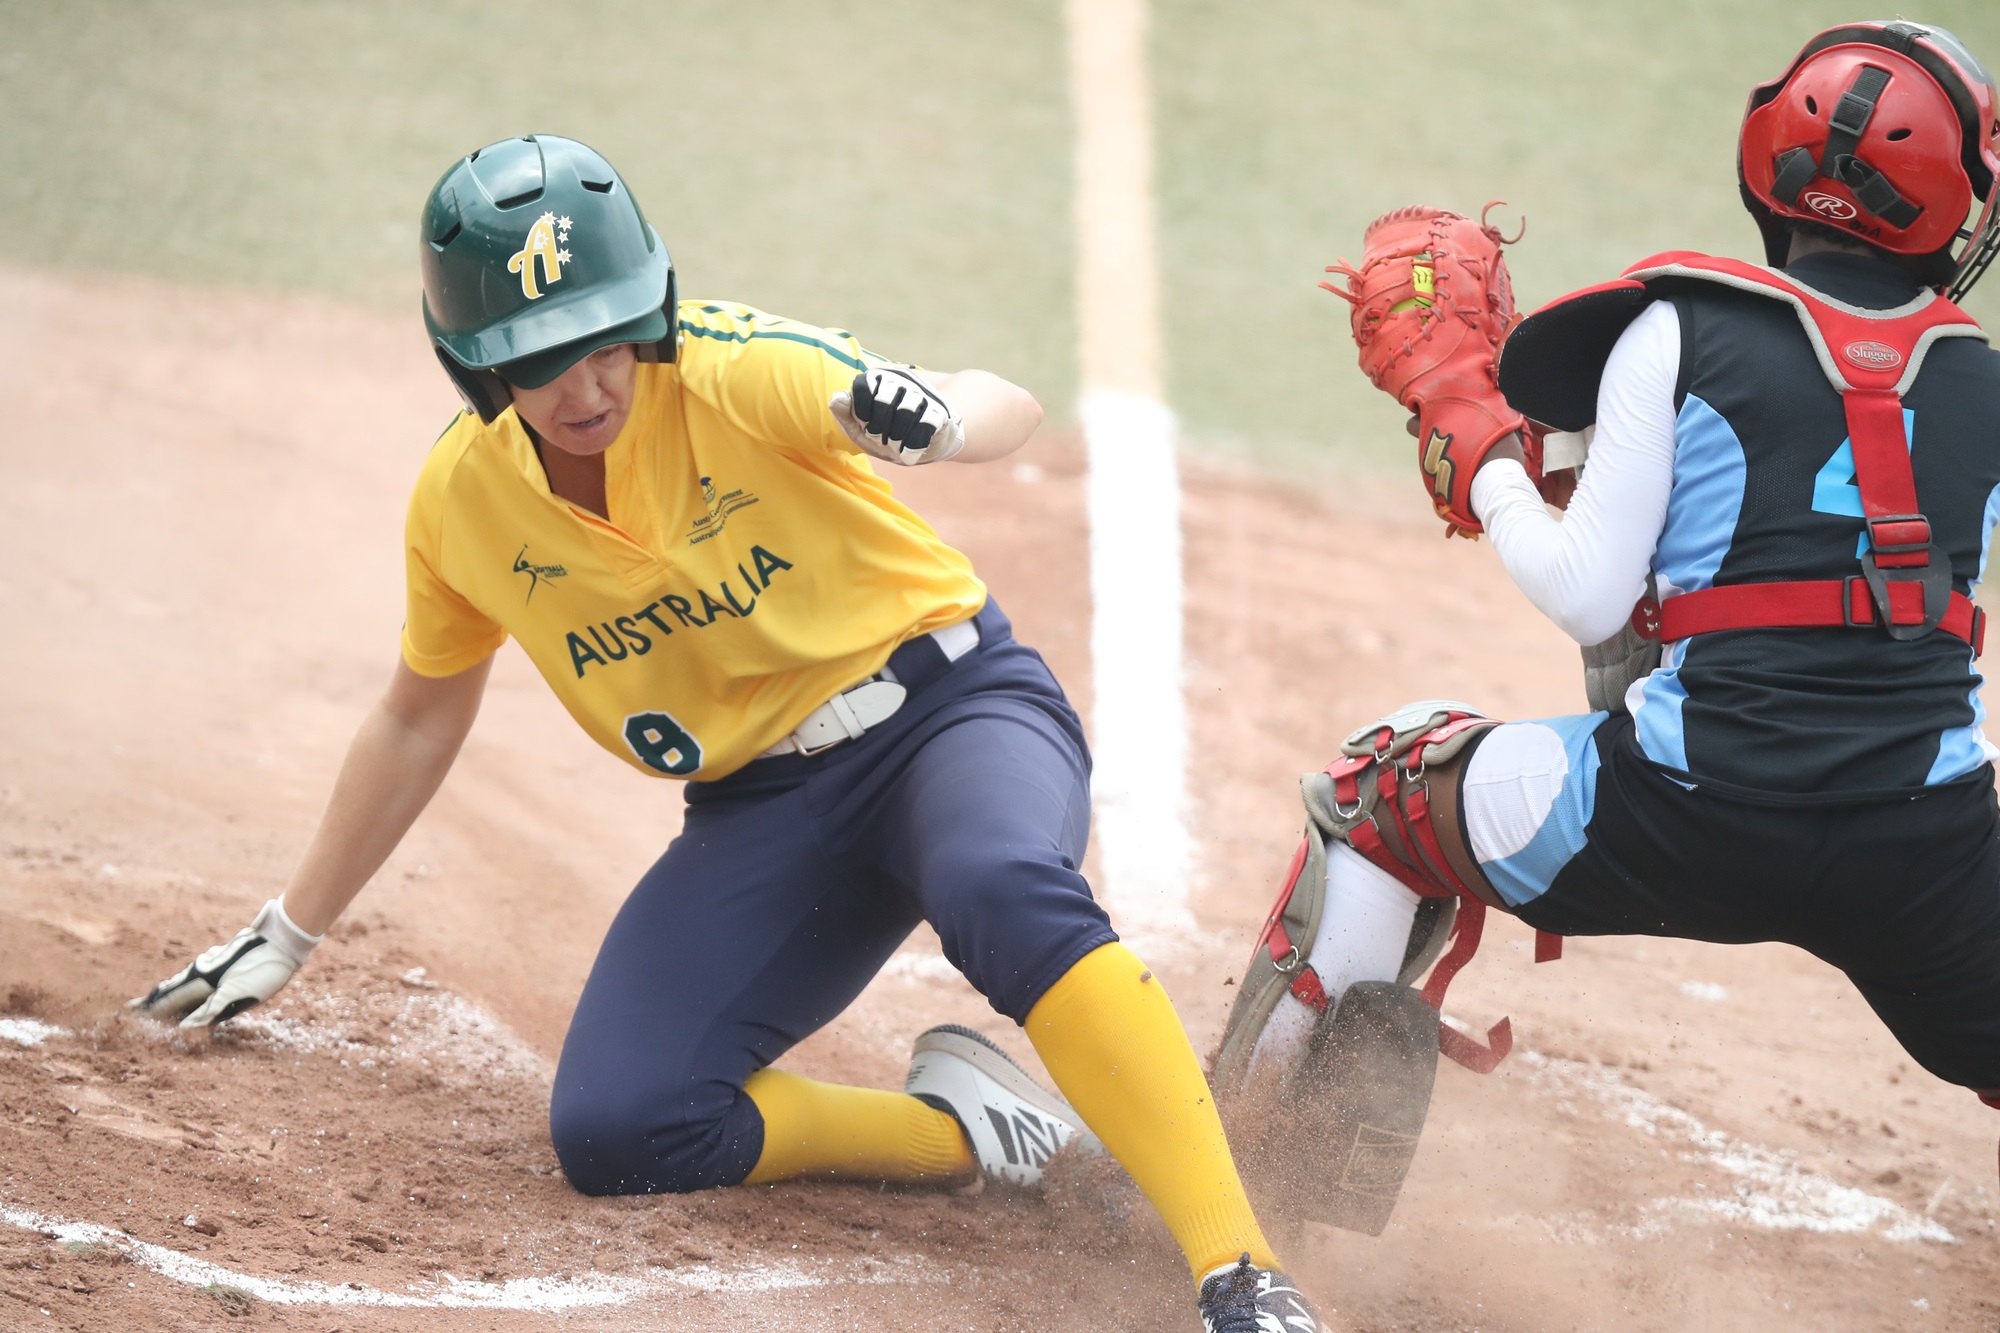 Melinda Weaver beats a throw home and scores avoiding Botswana's catcher Goitseone Monyadzwe